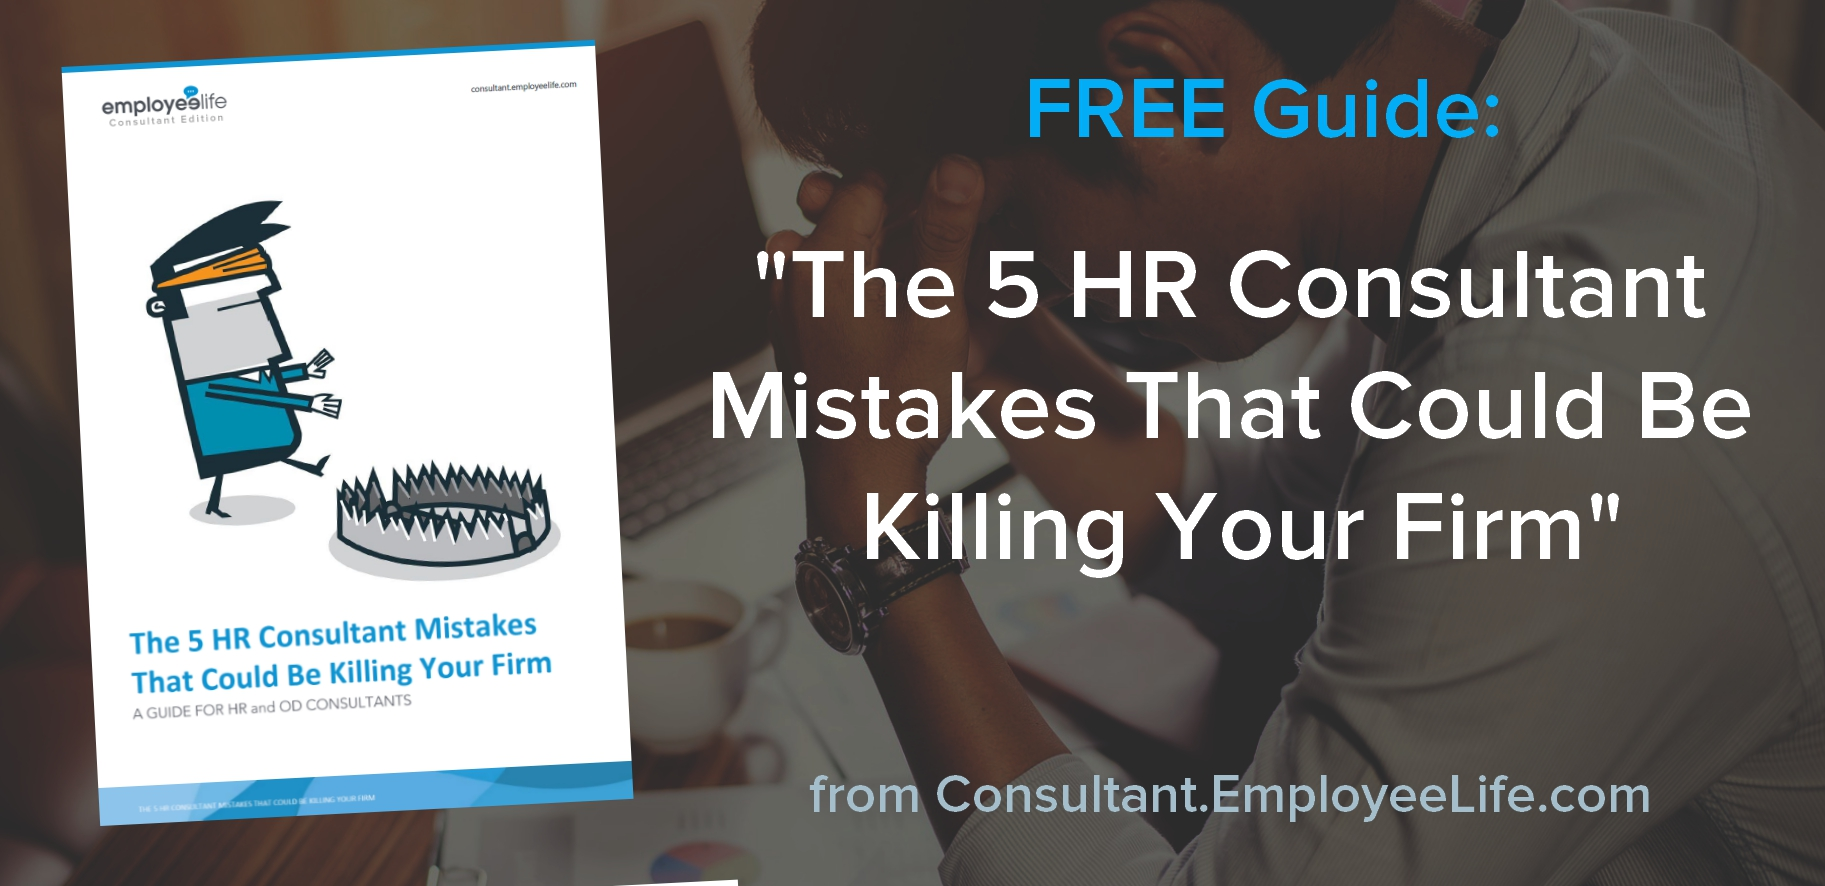 Free Guide for HR Consultants - For any successful HR Consultancy, there are a number of factors that come into play that lead to success. However, there are also quite a few mistakes or pitfalls that are common (and completely avoidable) to the HR Consultant, that cause unnecessary problems with their clients and ultimately, their consultancy.In this free guide, we will detail these 5 common but deadly mistakes every HR Consultant should avoid.